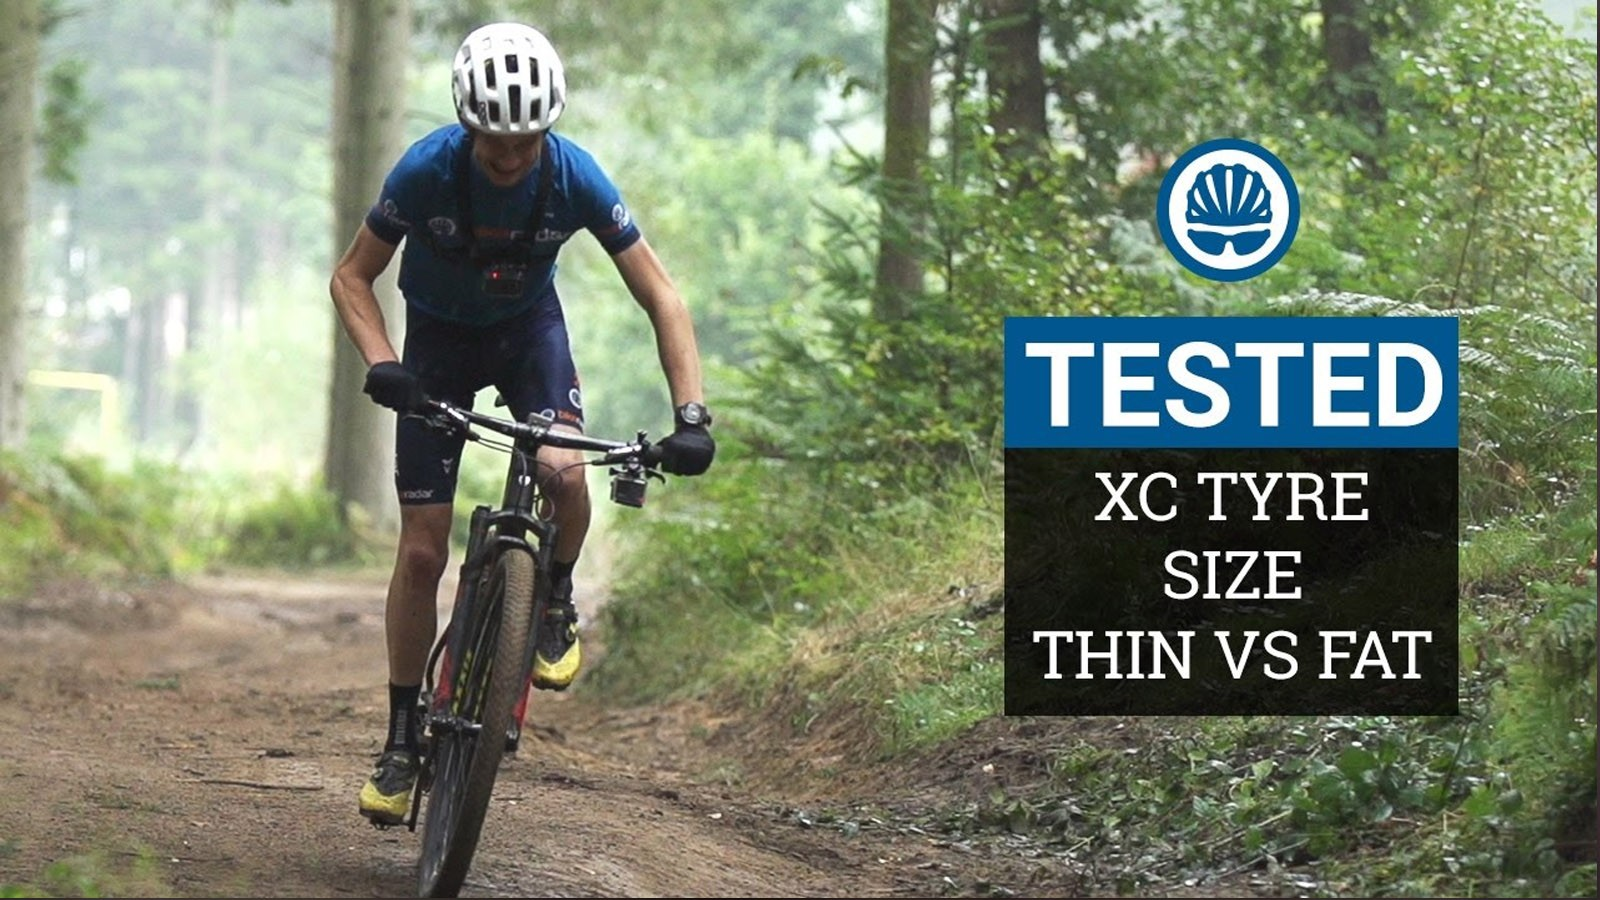 What's faster for XC, fat or skinny tires?